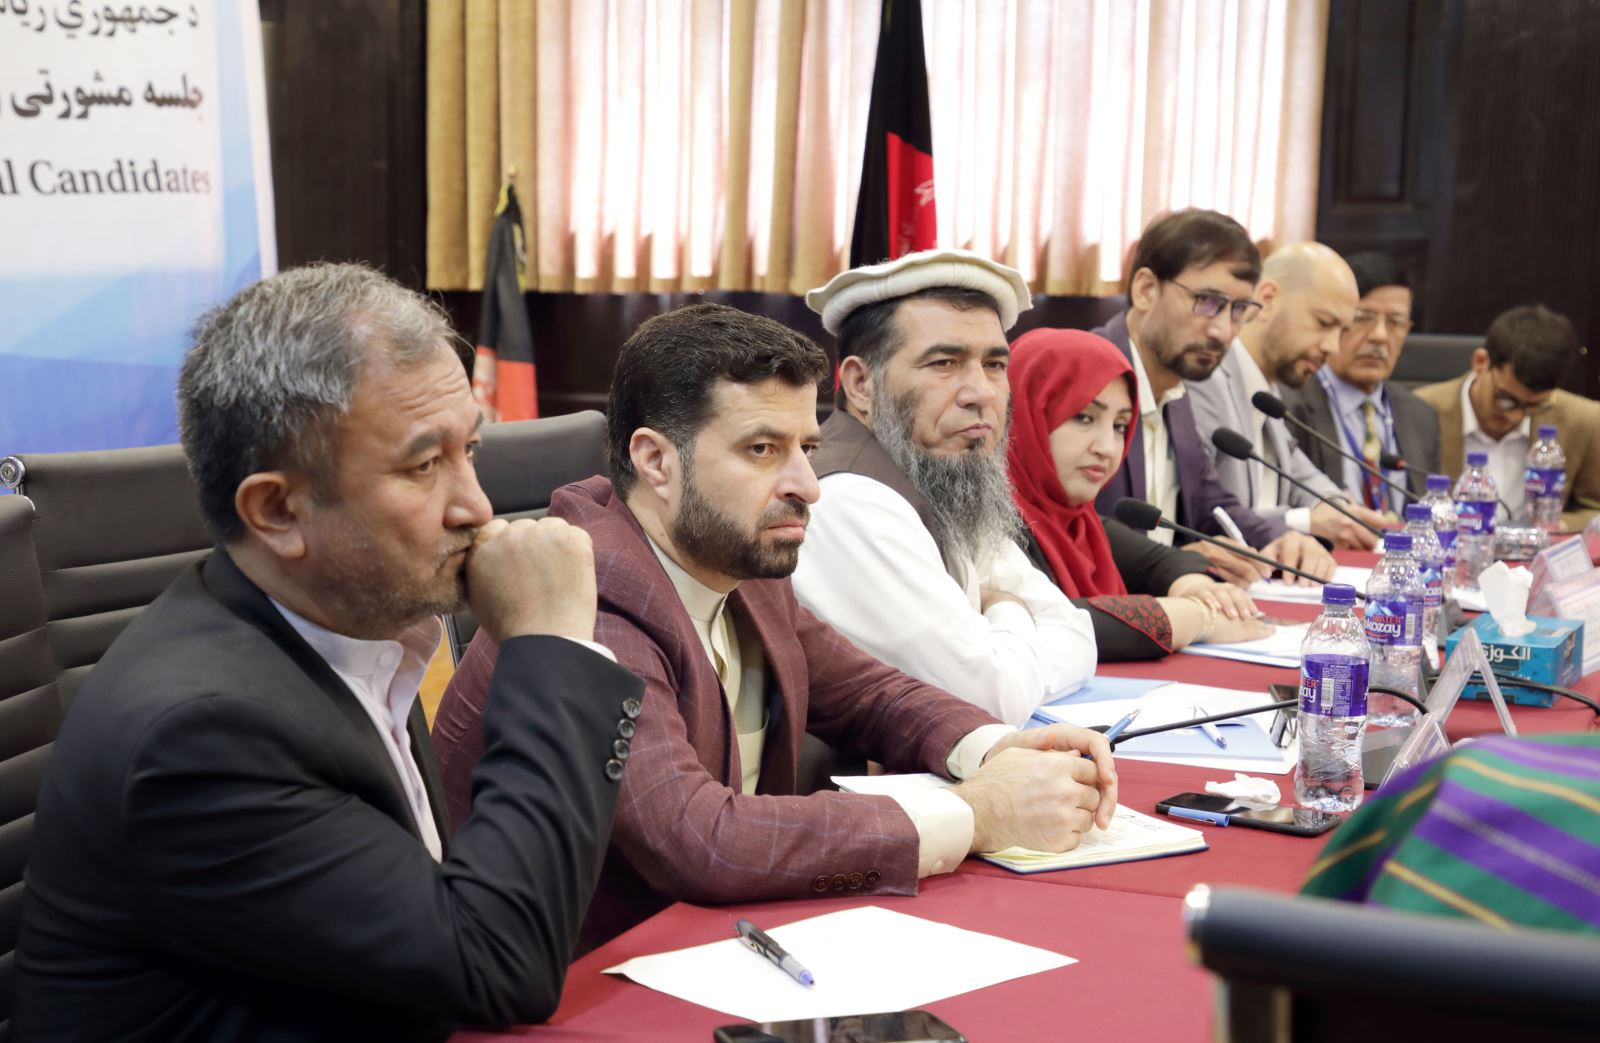 ECC consultation and coordination meeting with presidential candidates